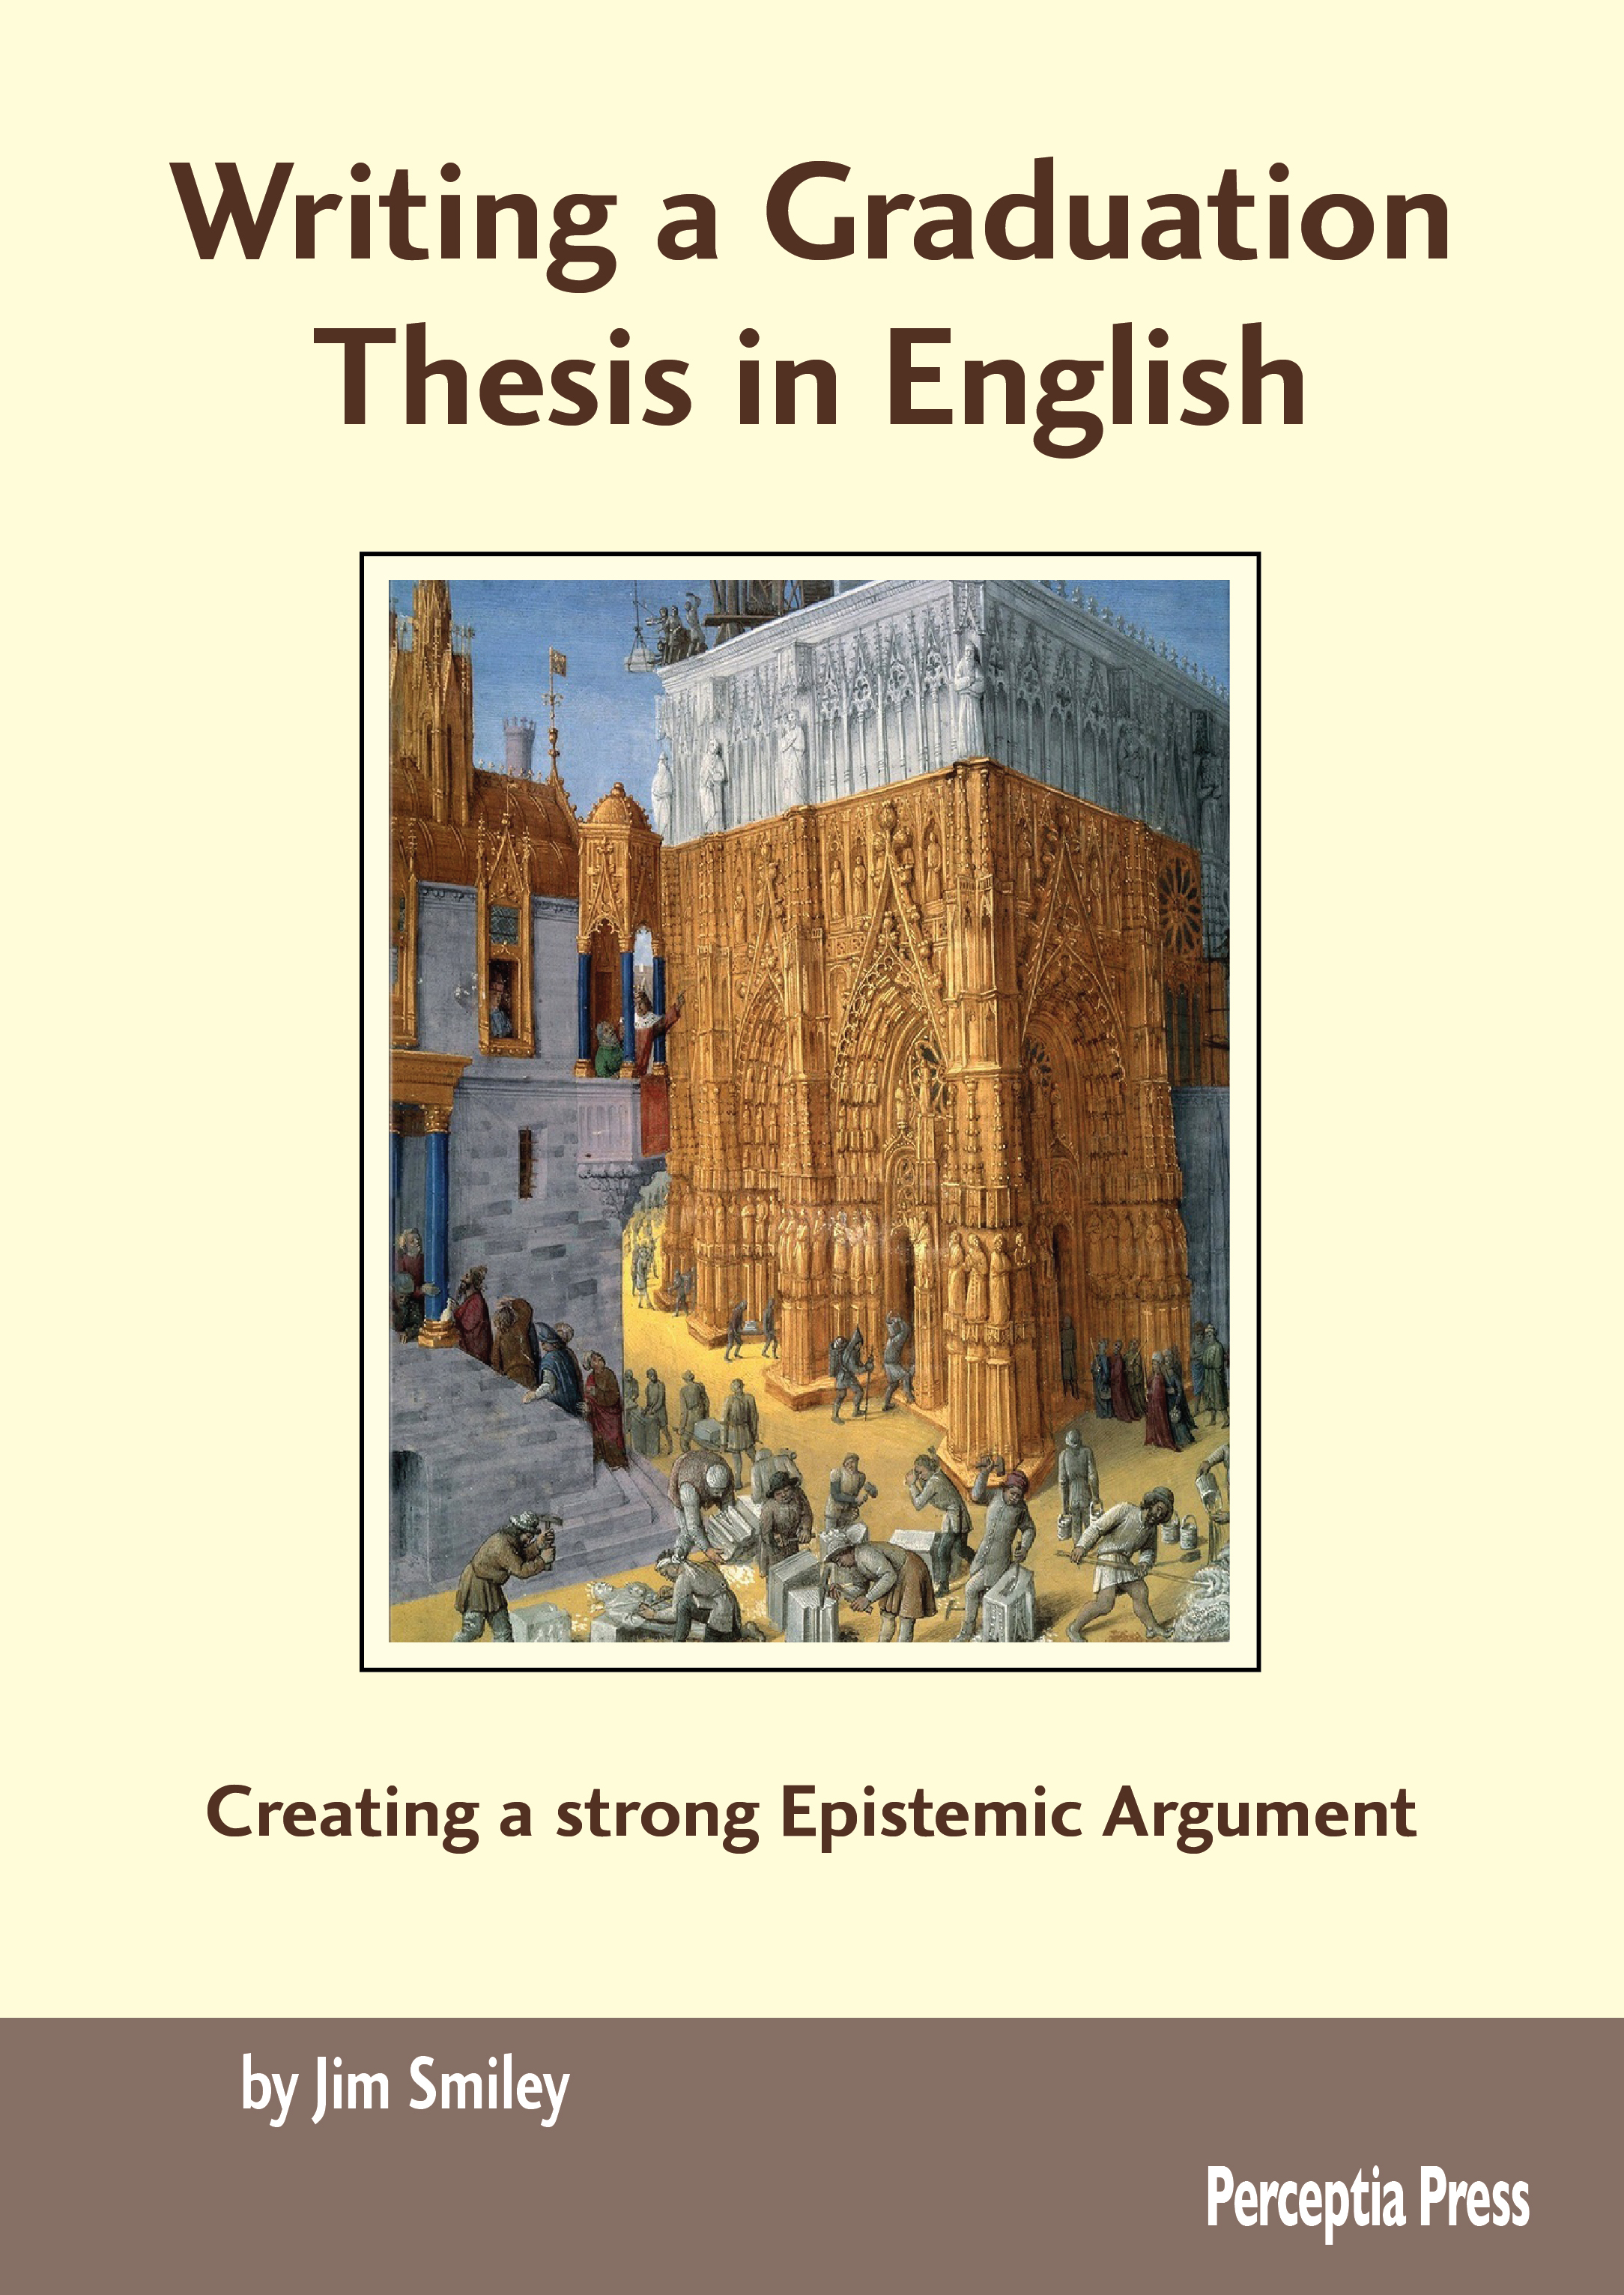 Writing a Graduate Thesis in English Cover